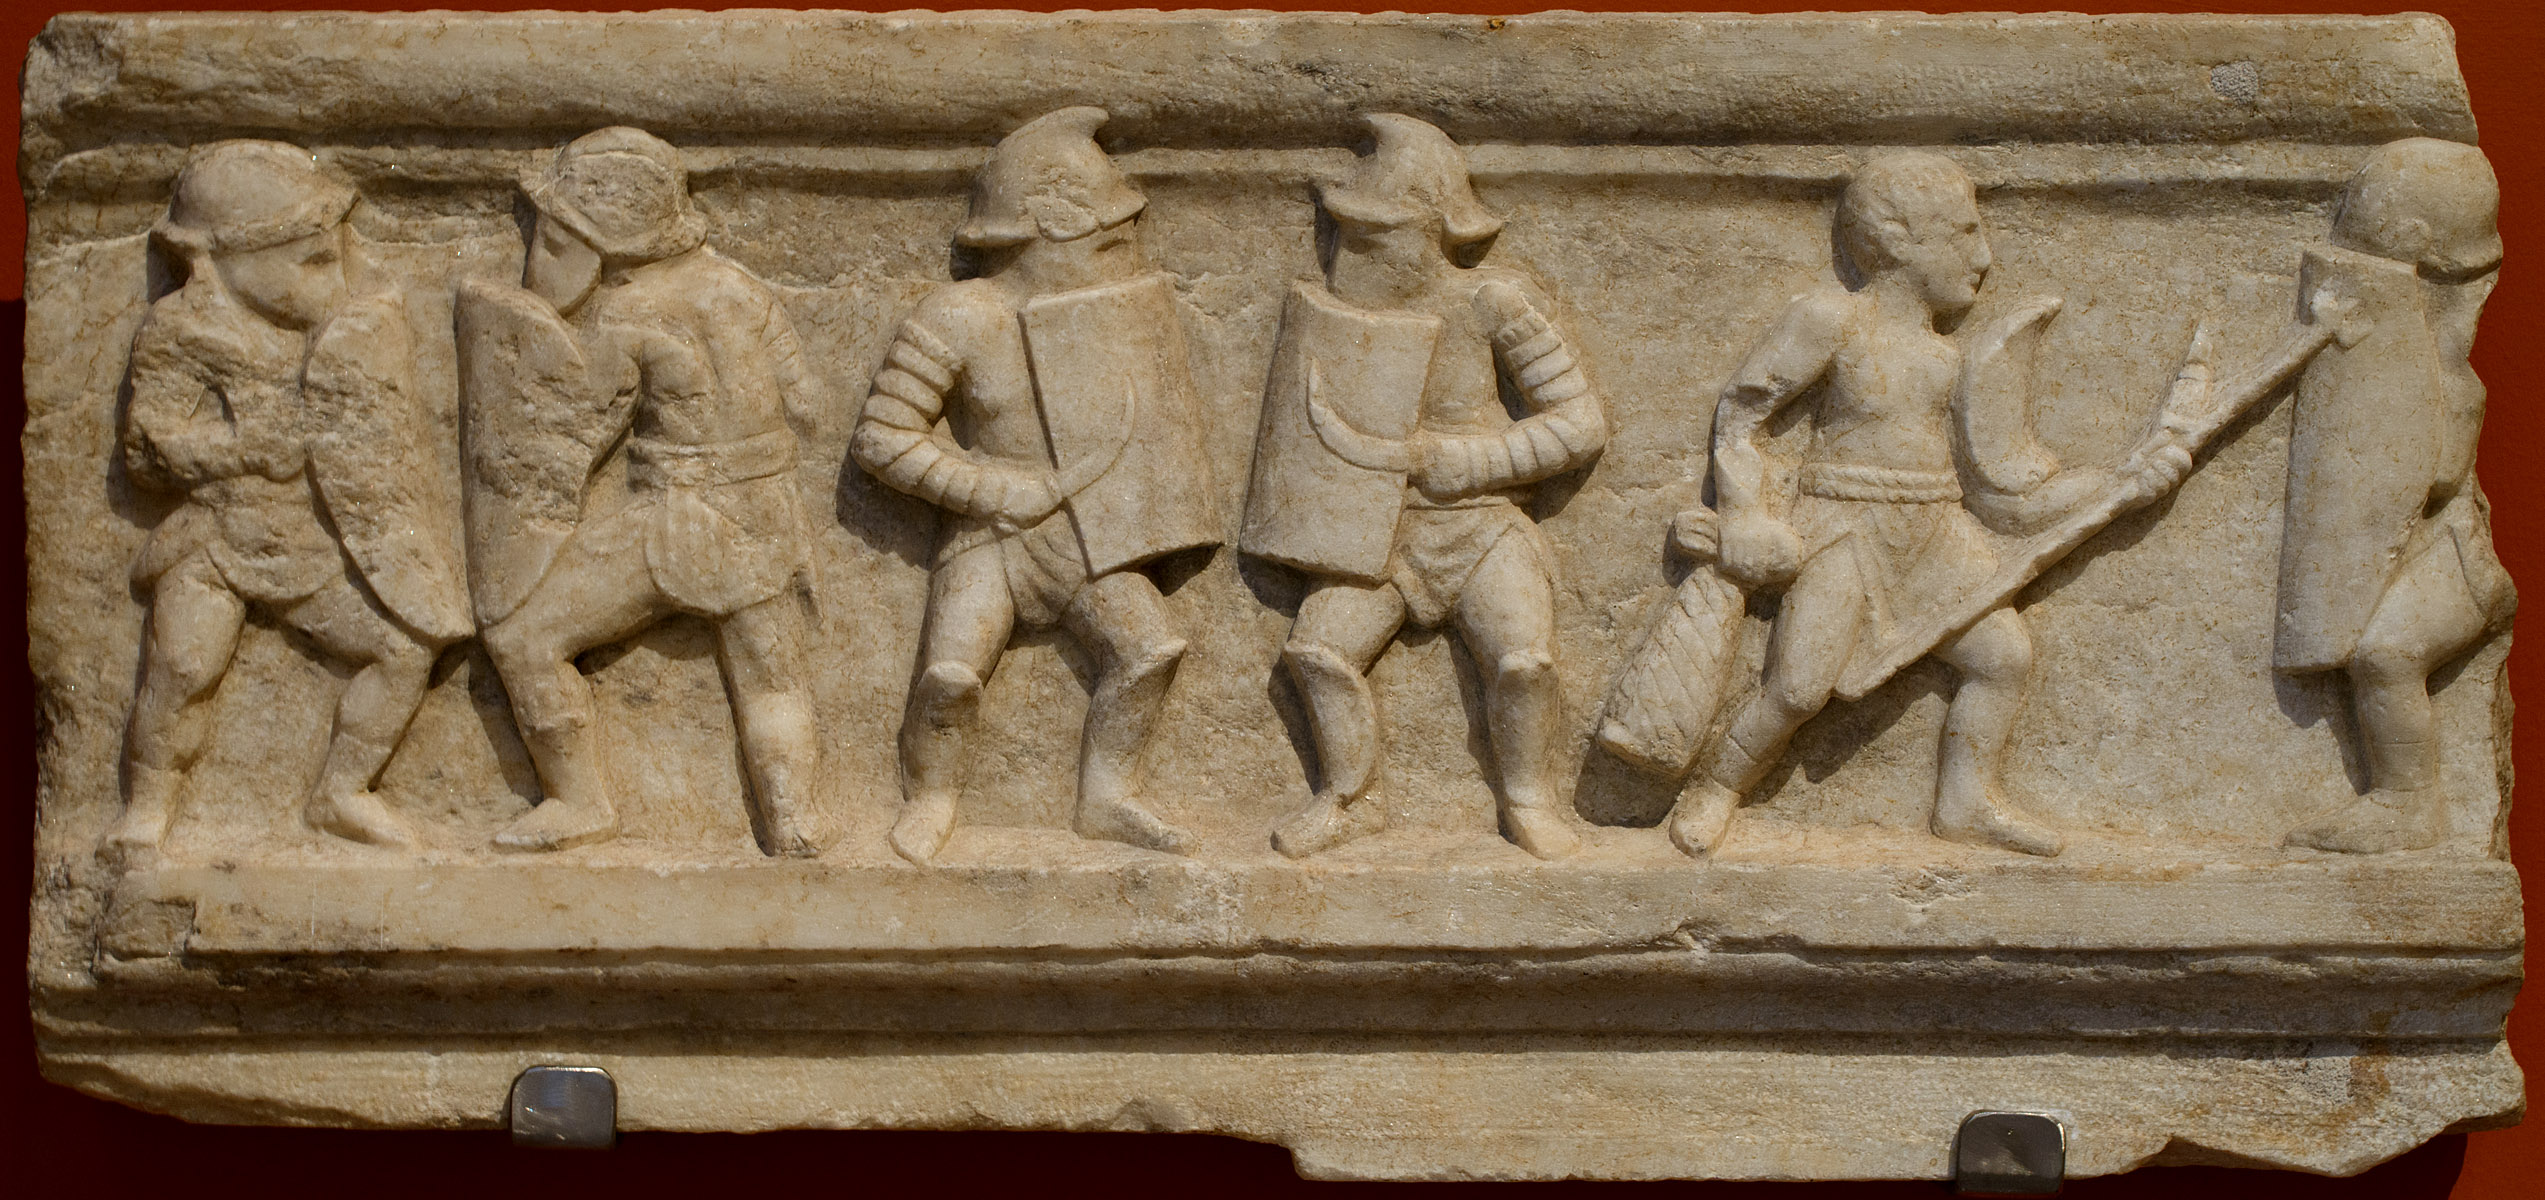 Base of a statue with a depiction of training of gladiators. Marble. Late 1st — early 2nd cent. CE. Inv. No. 1915. Patras, New Archaeological Museum